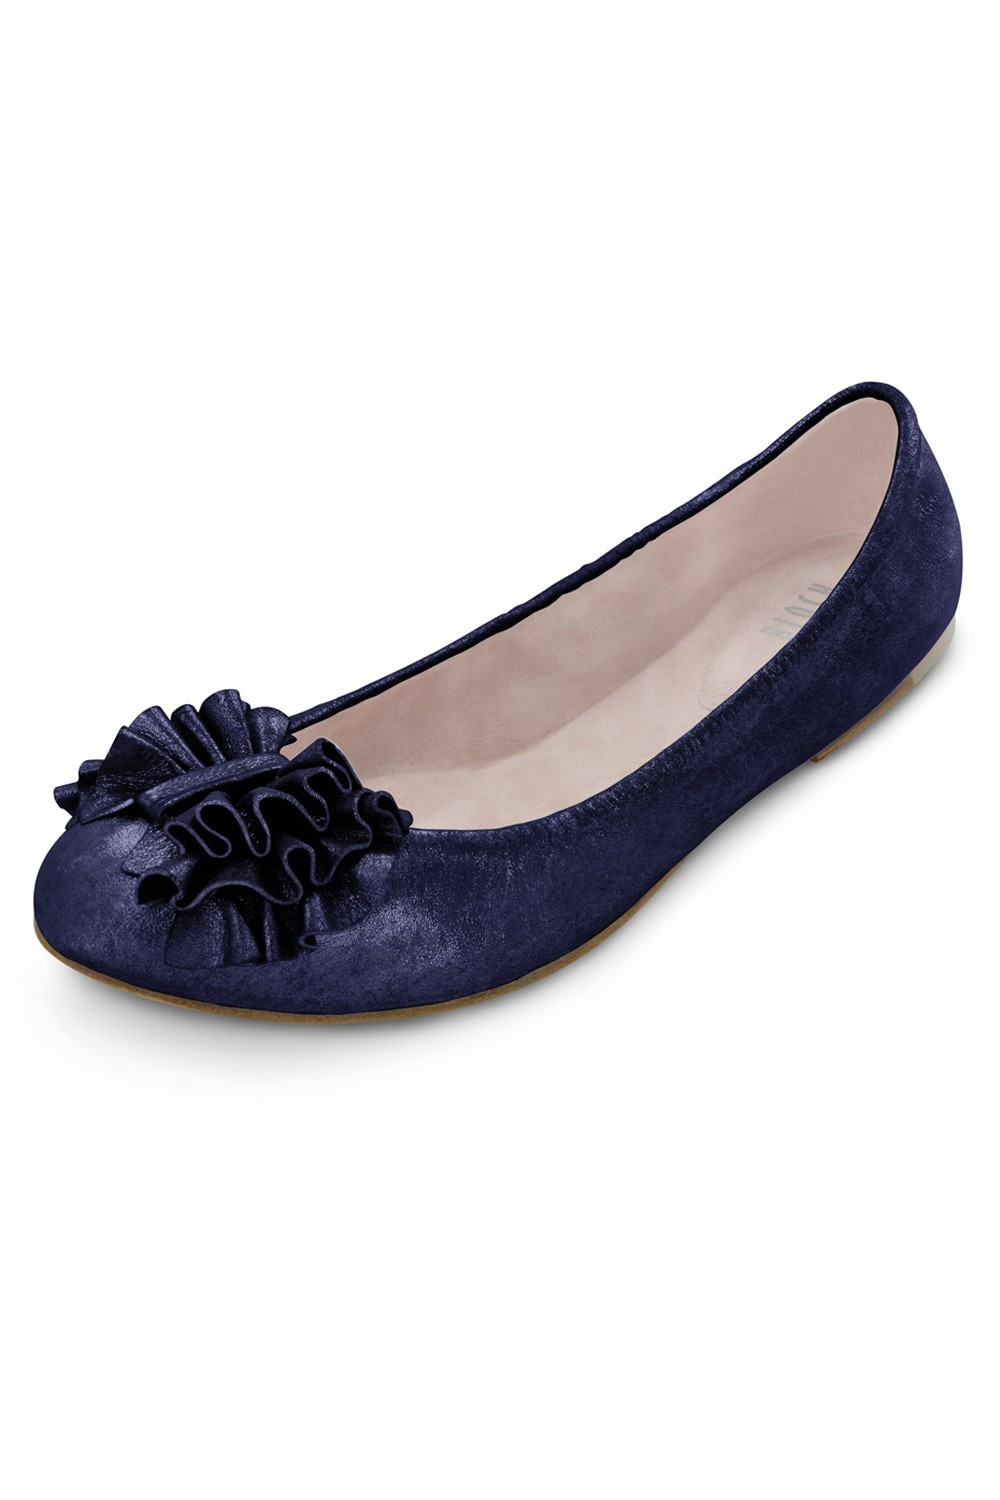 Raphaela Ladies Ballet Flat Womens Fashion Shoes